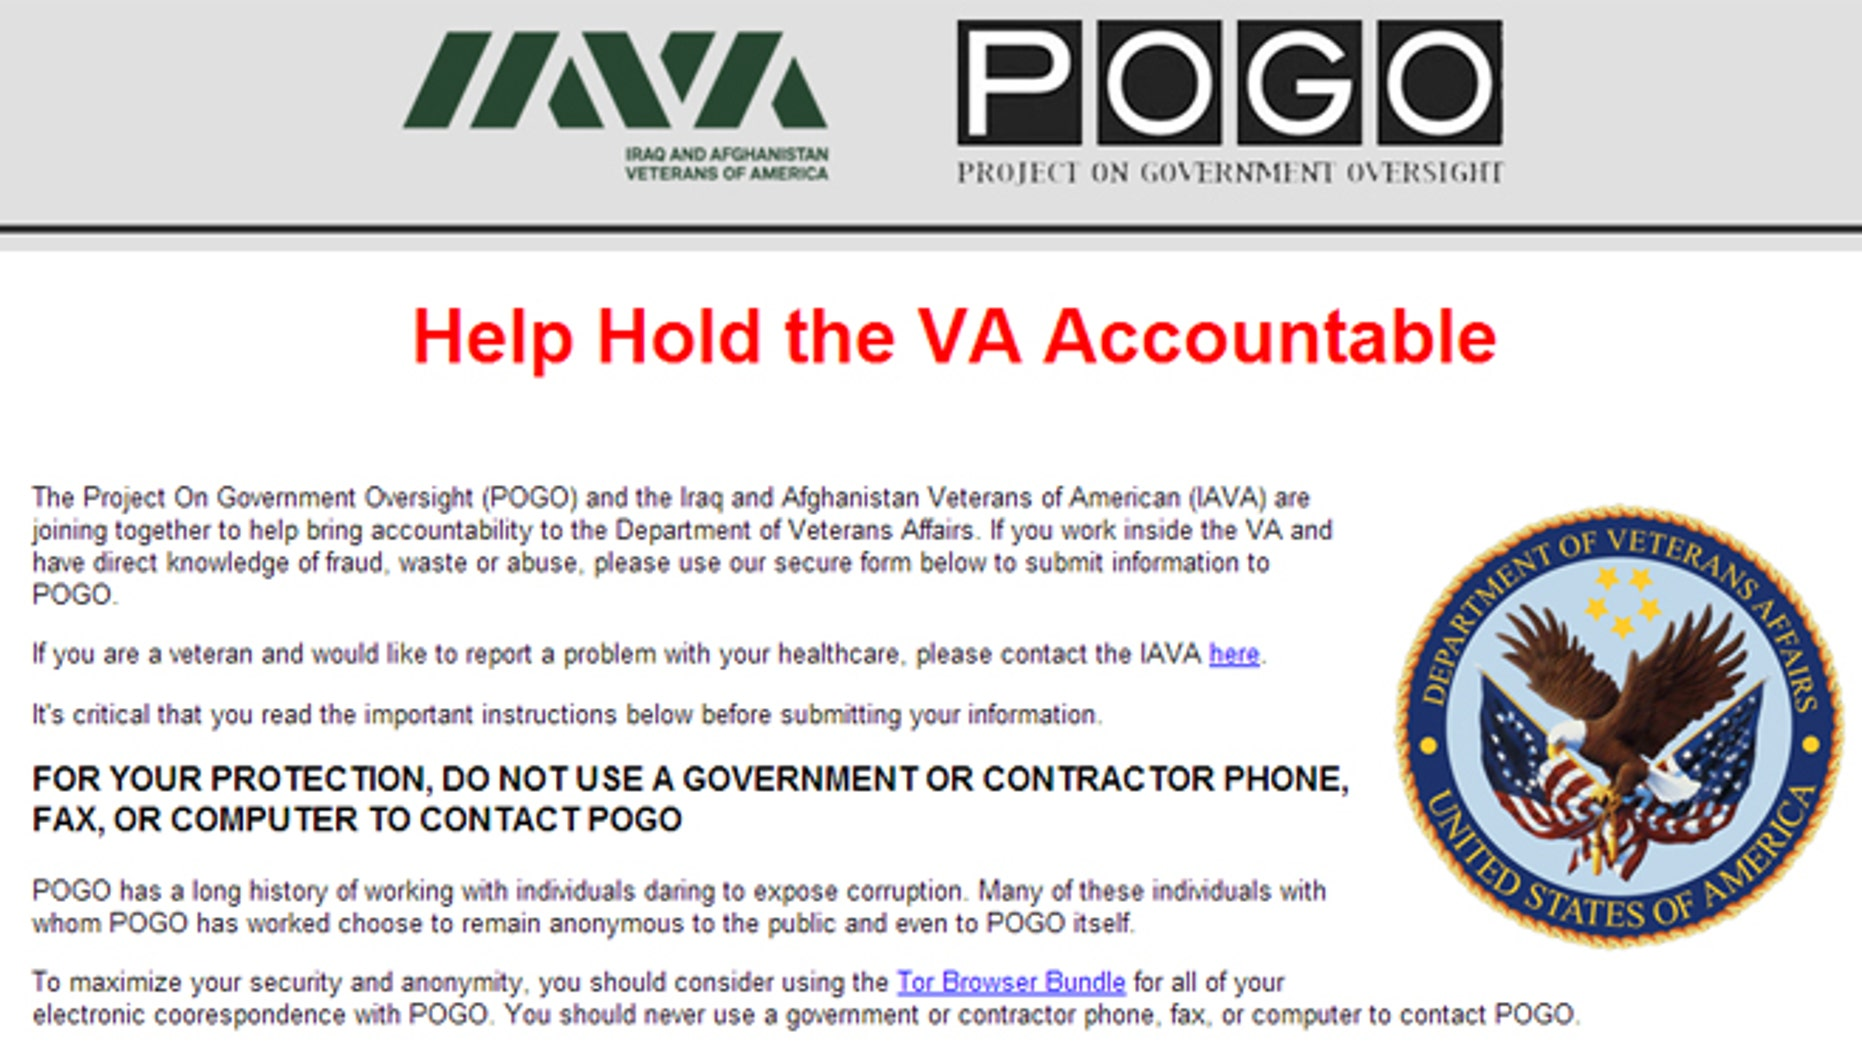 "The joint effort by the Iraq and Afghanistan Veterans of America (IAVA) and the Project on Government Oversight (POGO) aims to ""bring accountability"" to the department by allowing whistleblowers to expose corruption anonymously."